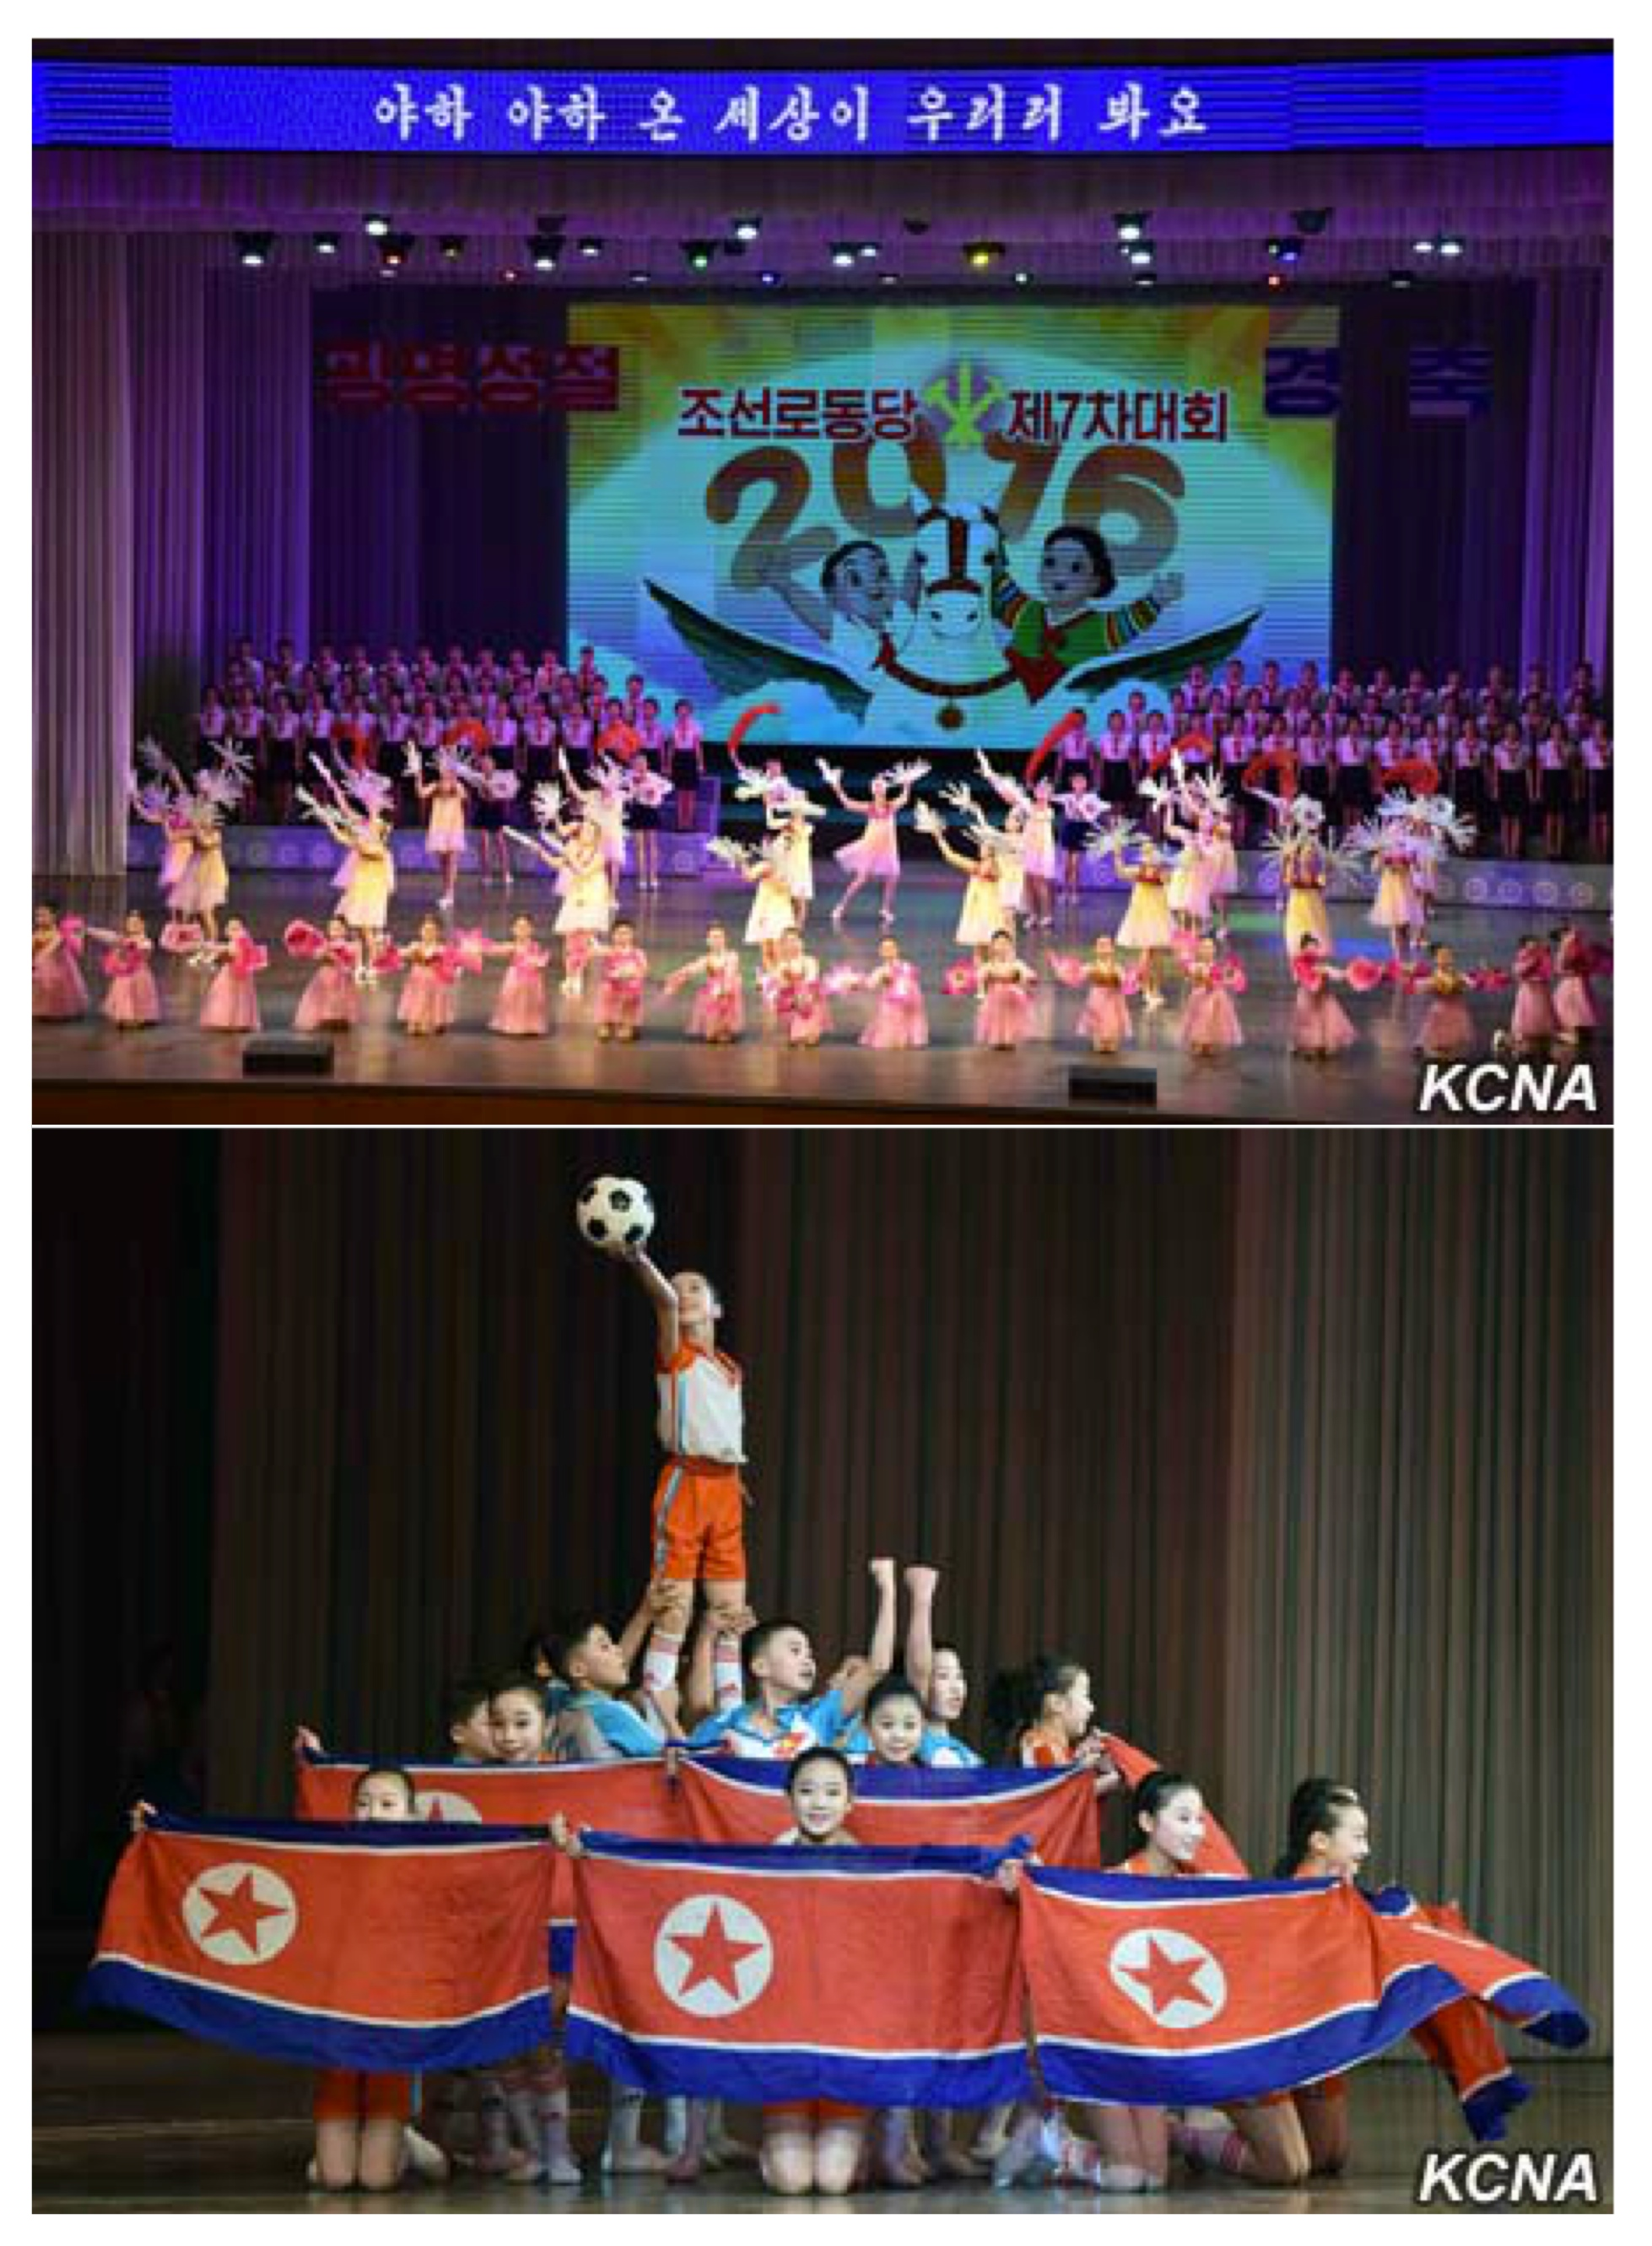 A performance by Pyongyang schoolchildren at Mangyo'ng Schoolchildren's Palace in Pyongyang on February 16, 2016 (Photos: KCNA).